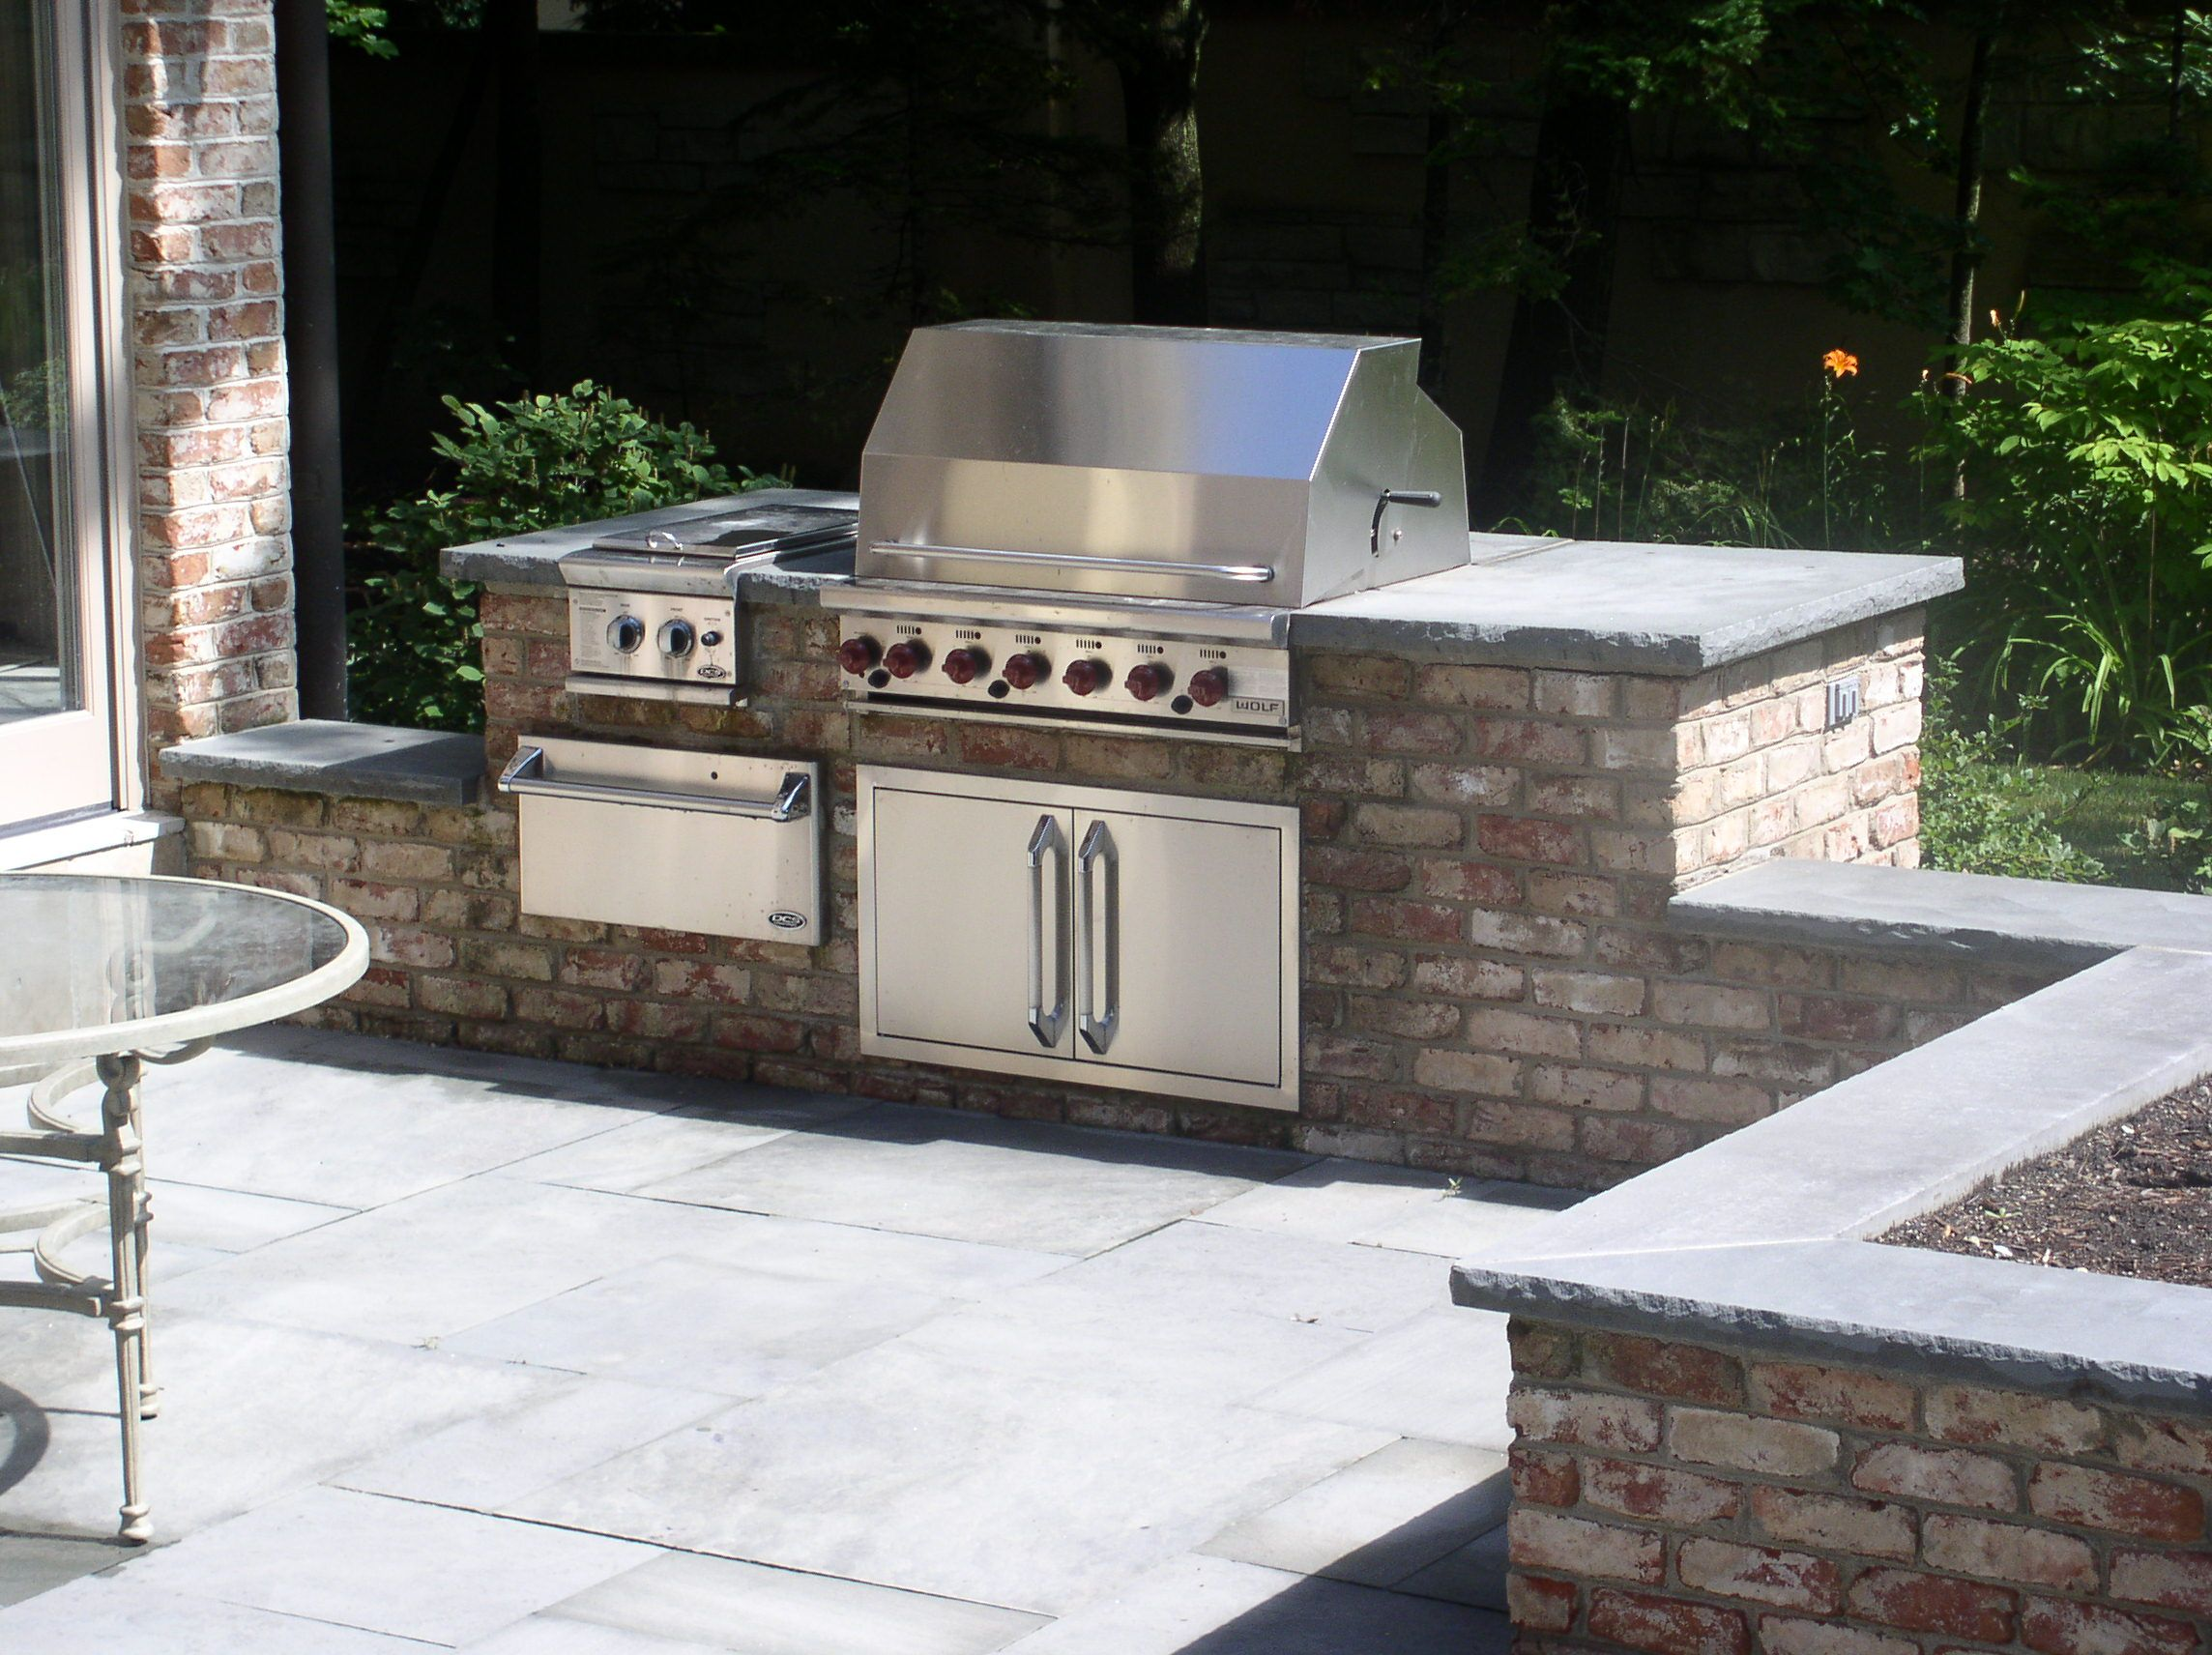 outdoor patio grill station - Google Search | for the yard ... on Patio Grill Station  id=88622